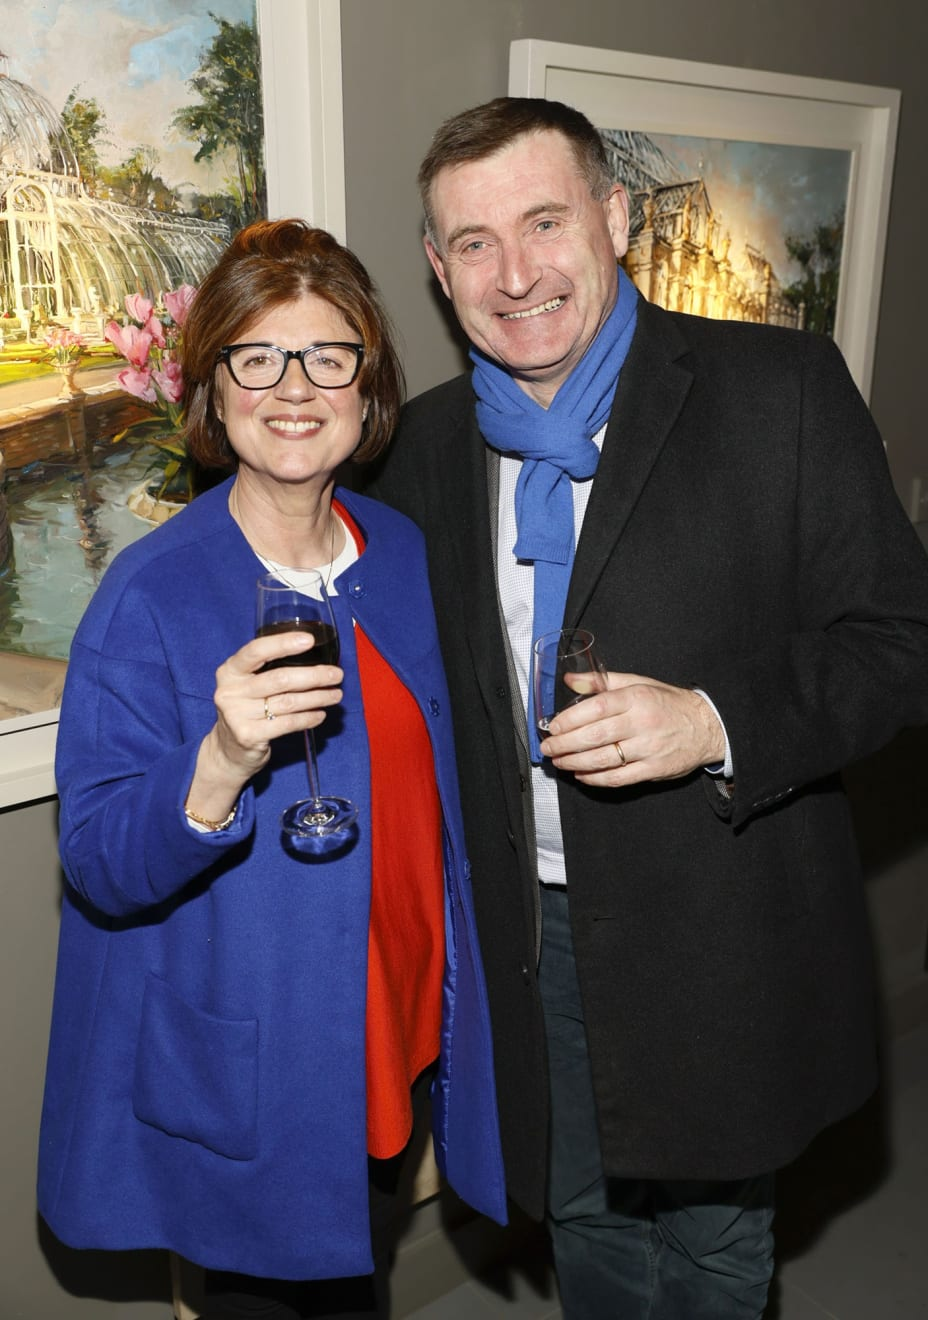 Conor and Rosanna Shaw at the opening of the 'Botanical Fusion. Singapore to Dublin' Exhibition